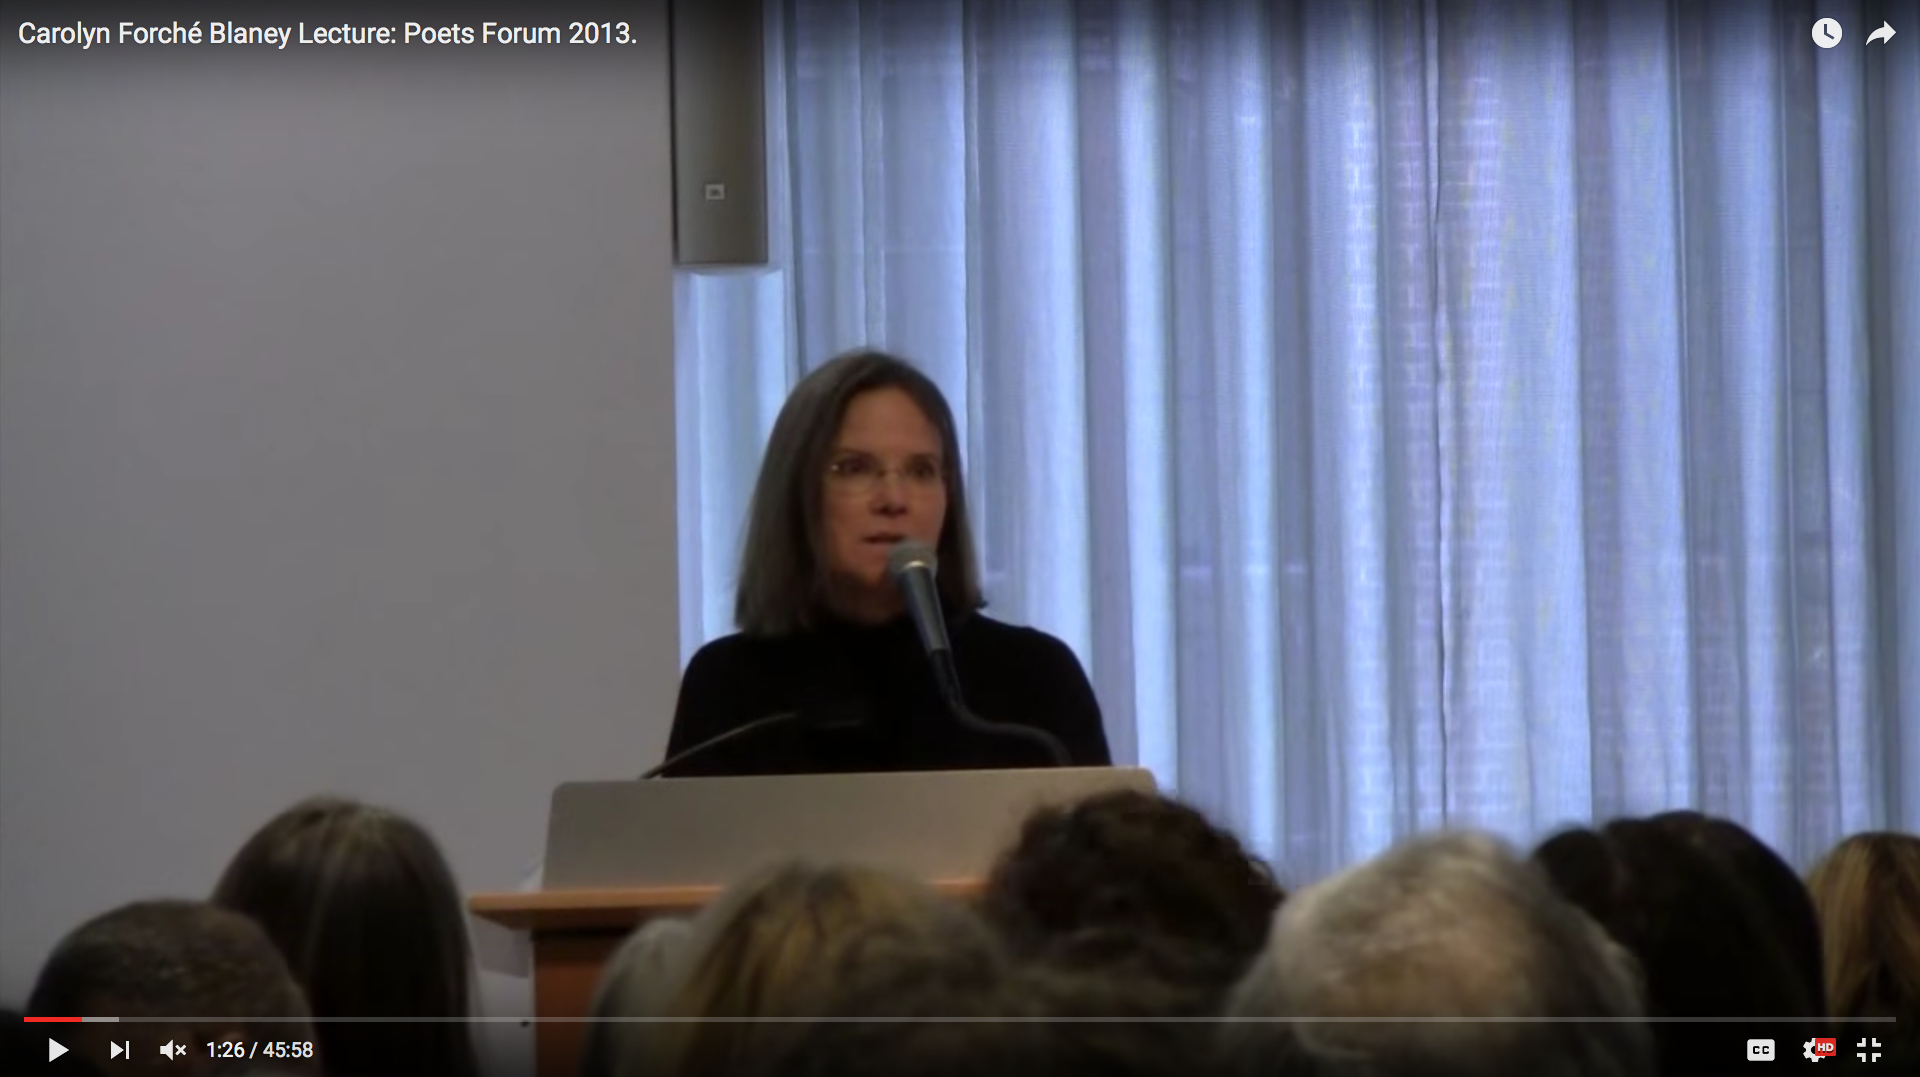 Carolyn Forché Blaney Lecture